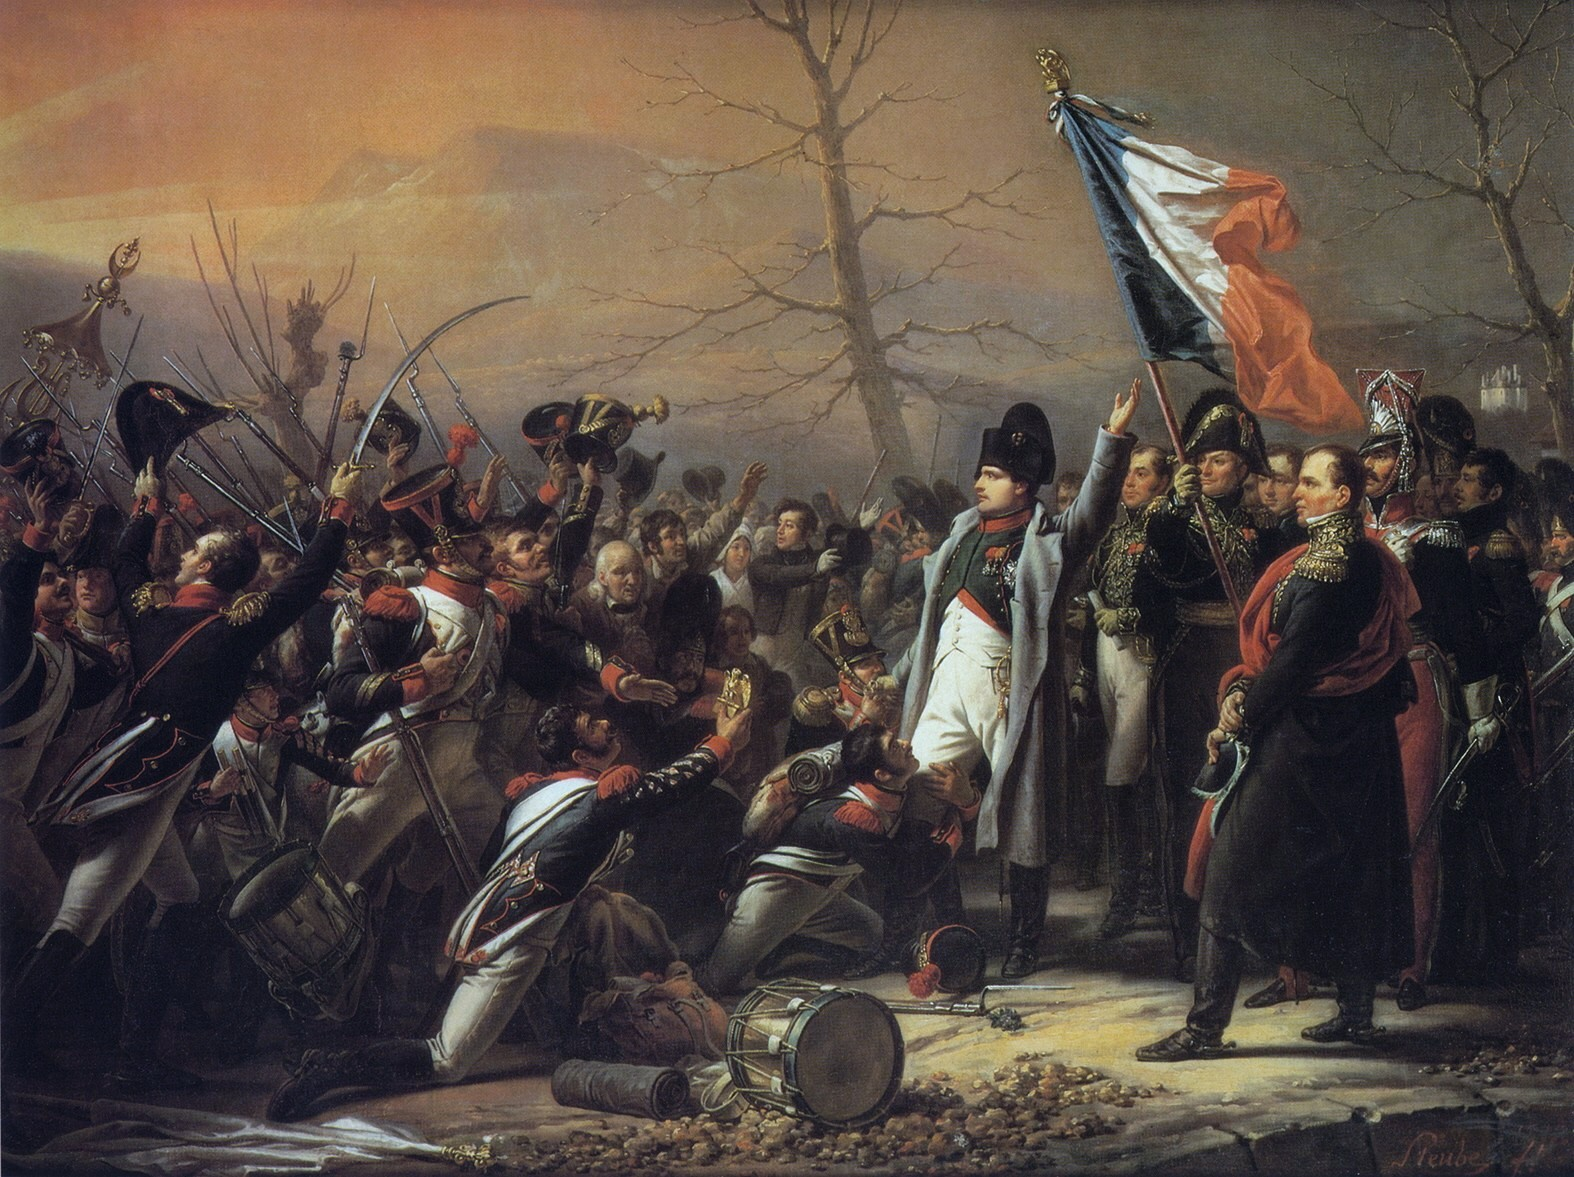 Bonaparte controlled that chaos very well